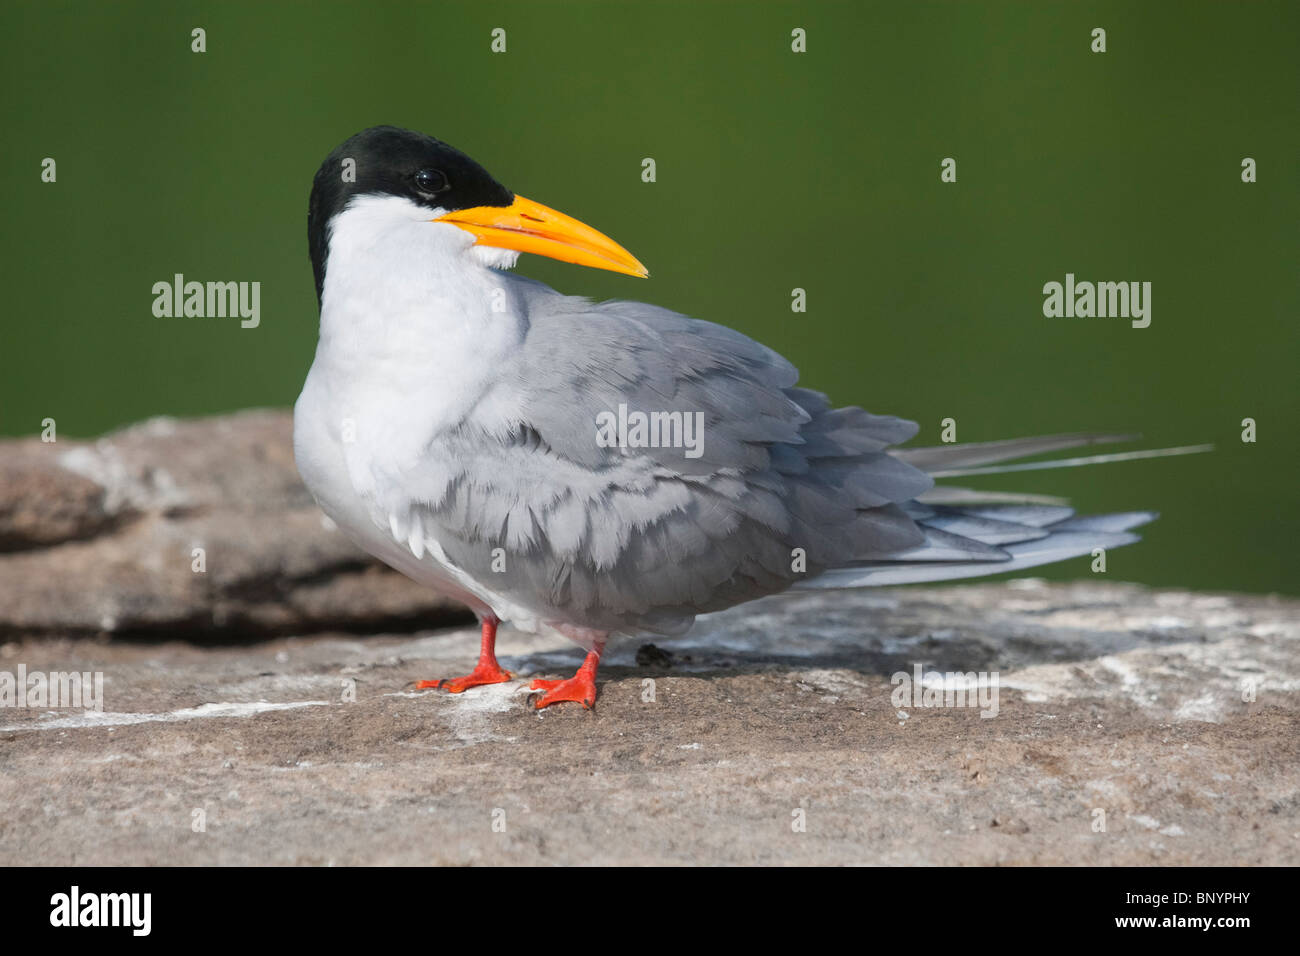 River Tern,On the rocks,shy,cute,cleaning,preening,model,birds,wildlife,nature,canon,model,posing,catchlight,on - Stock Image